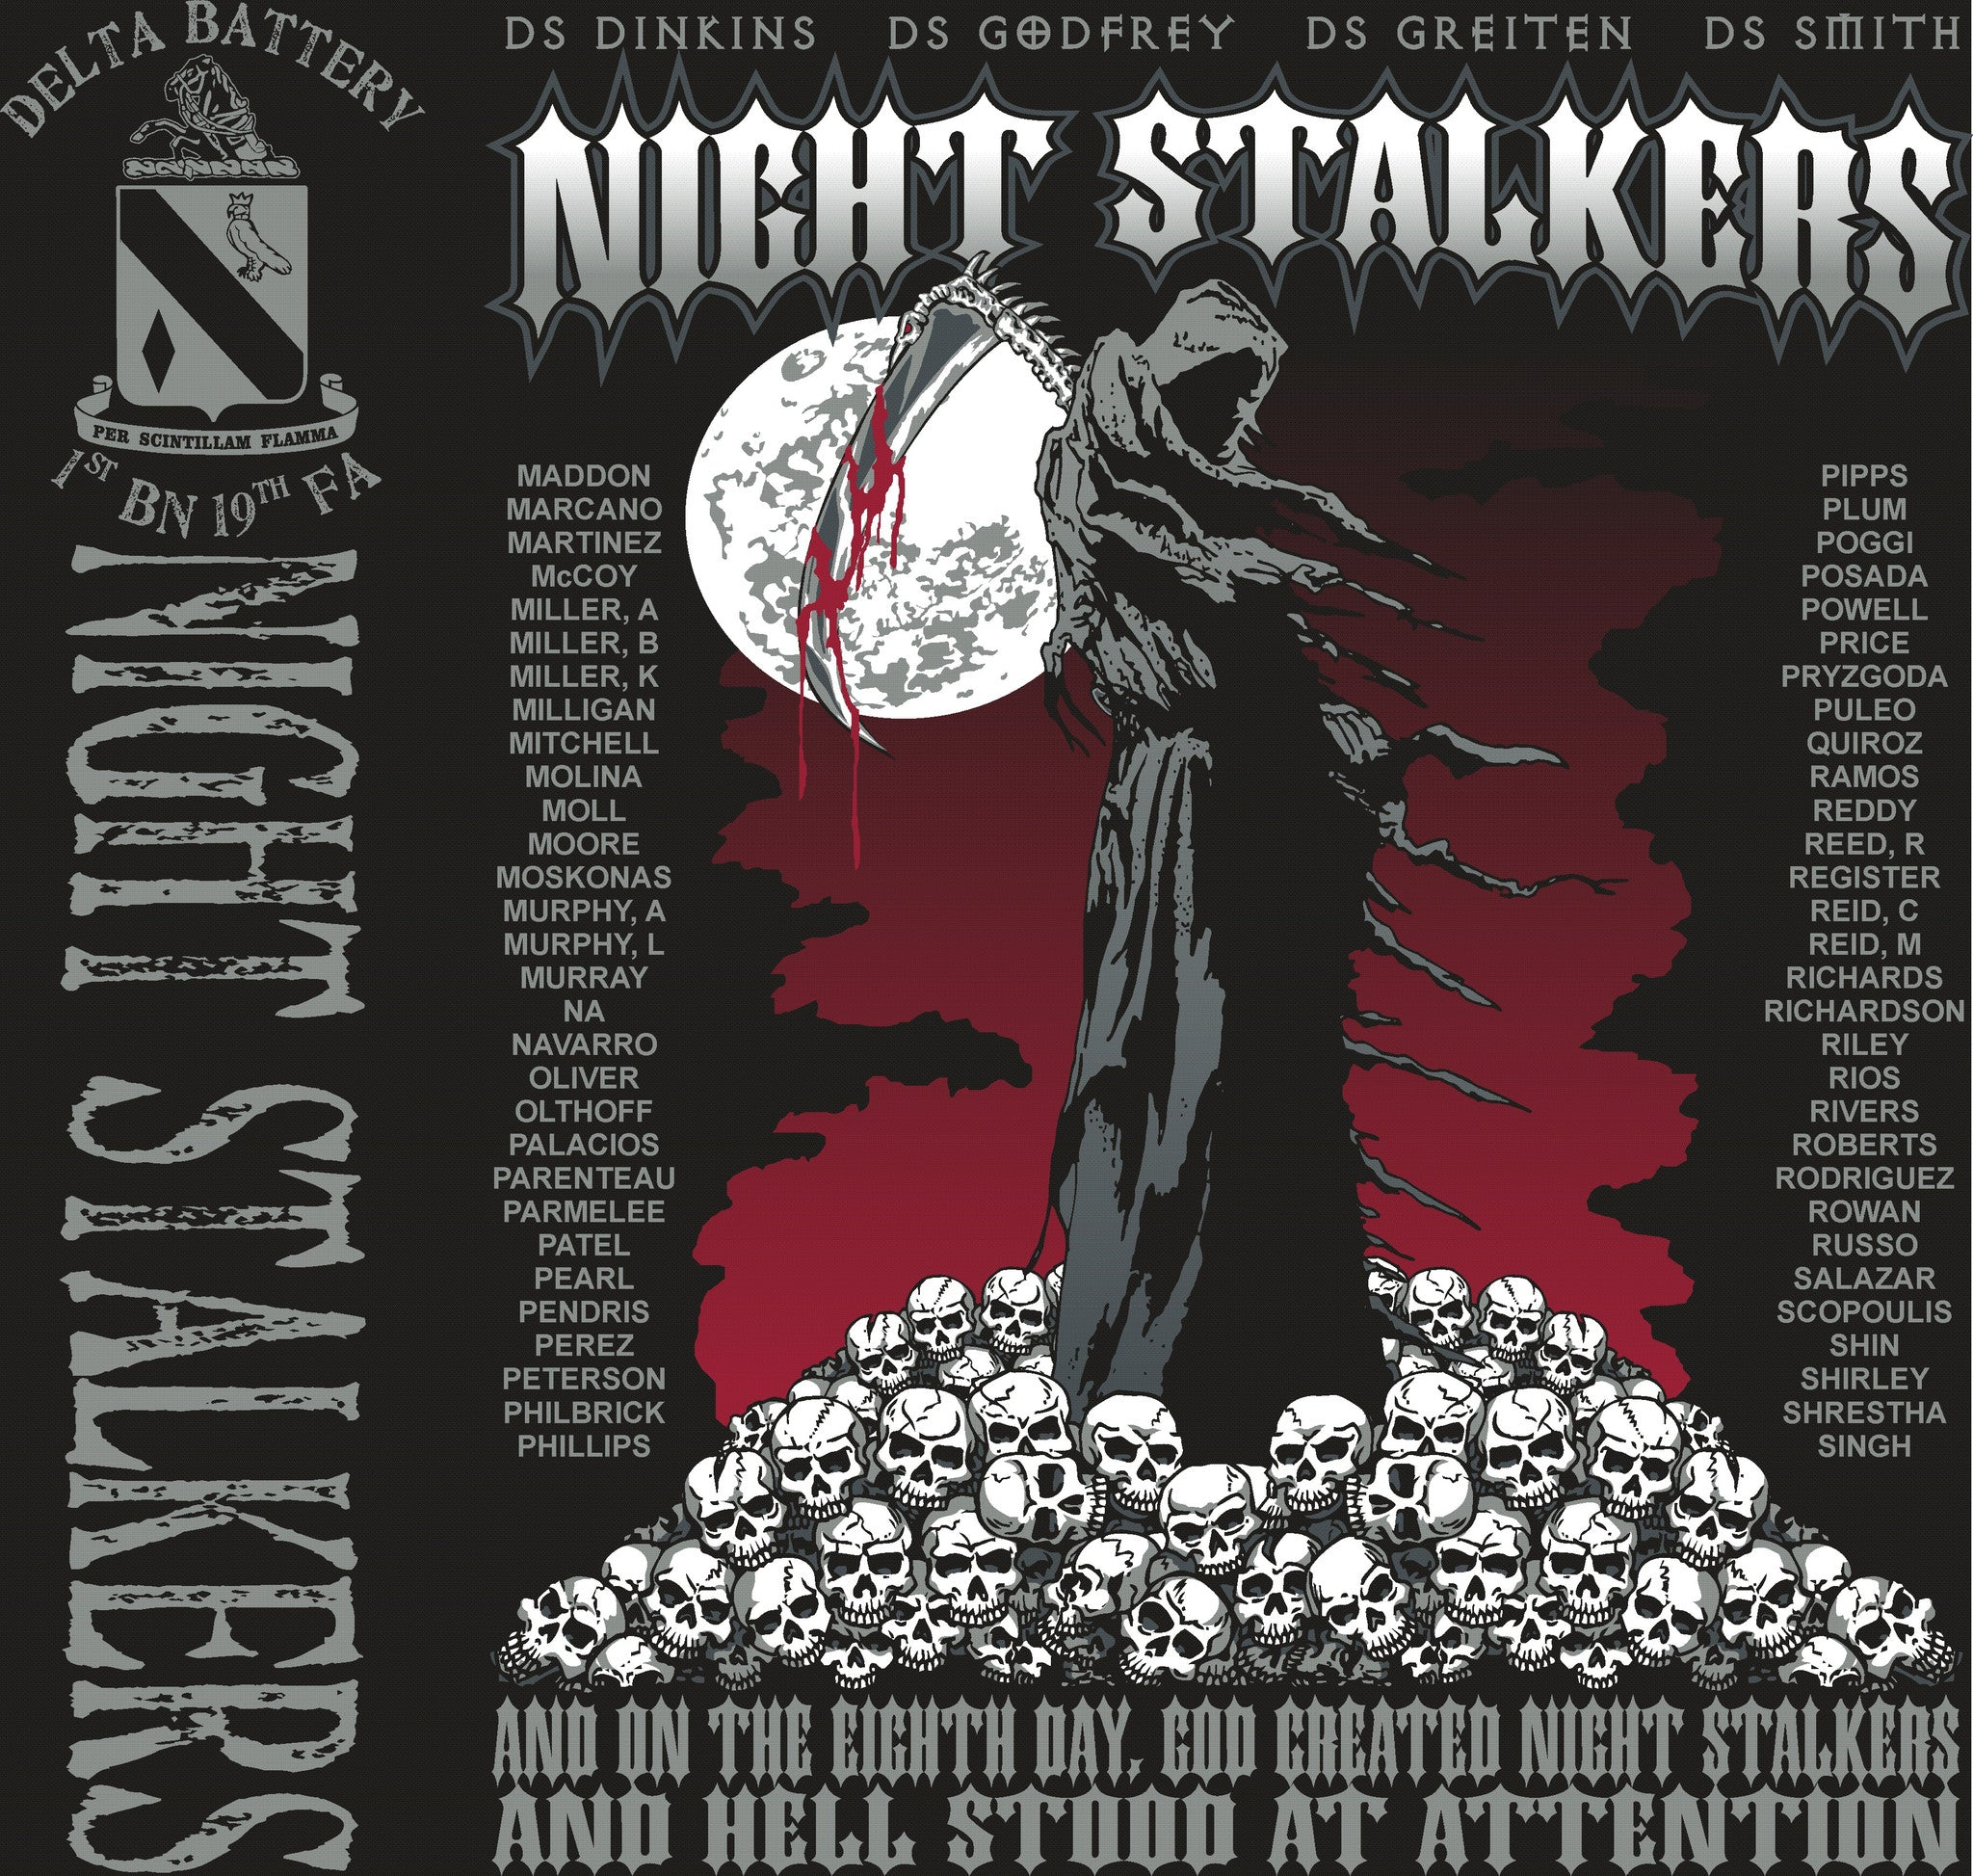 Platoon Shirts Delta 1st 19th NIGHT STALKERS OCT 2015